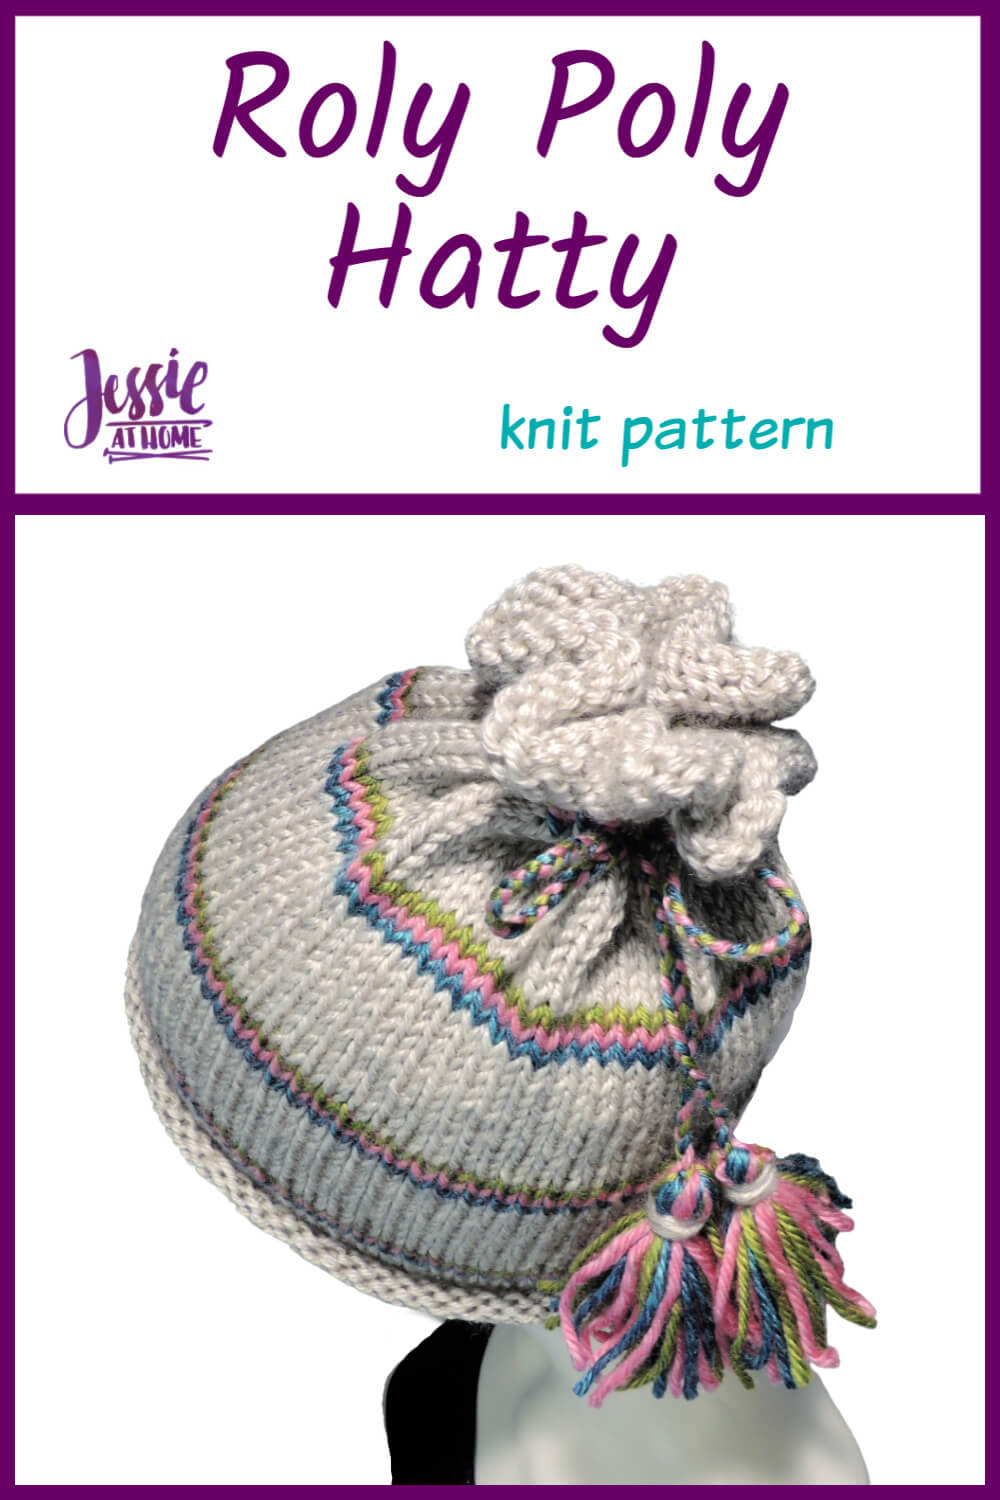 Pin 2 - Roly Poly Hattie knit pattern by Jessie At Home